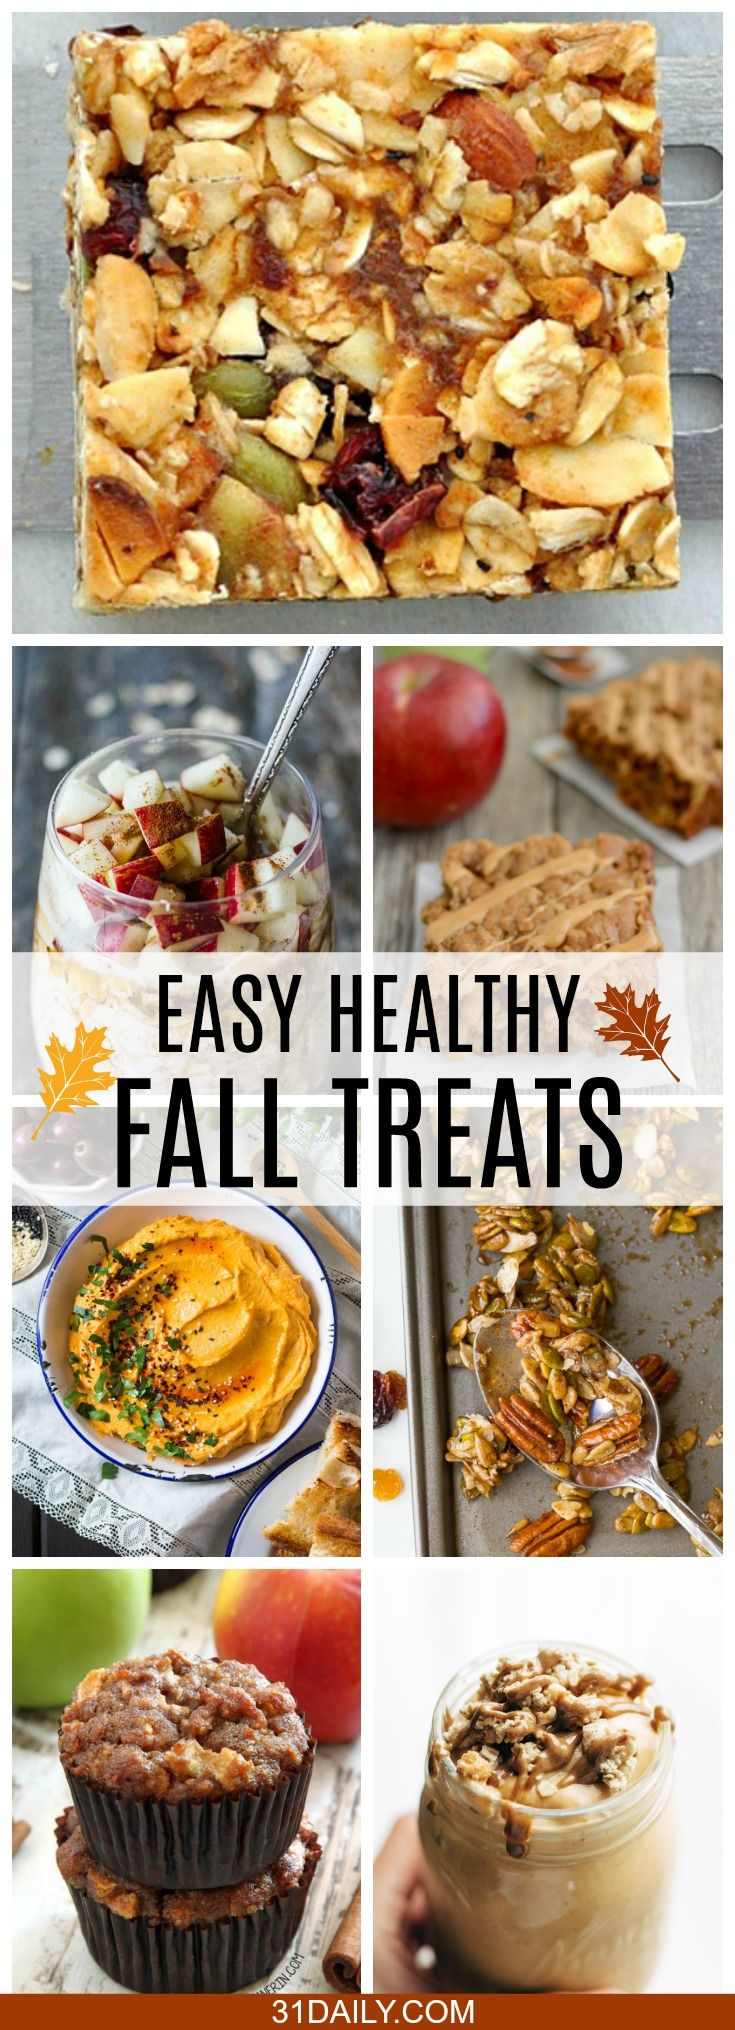 Easy and Healthy Fall Treats - 31 Daily